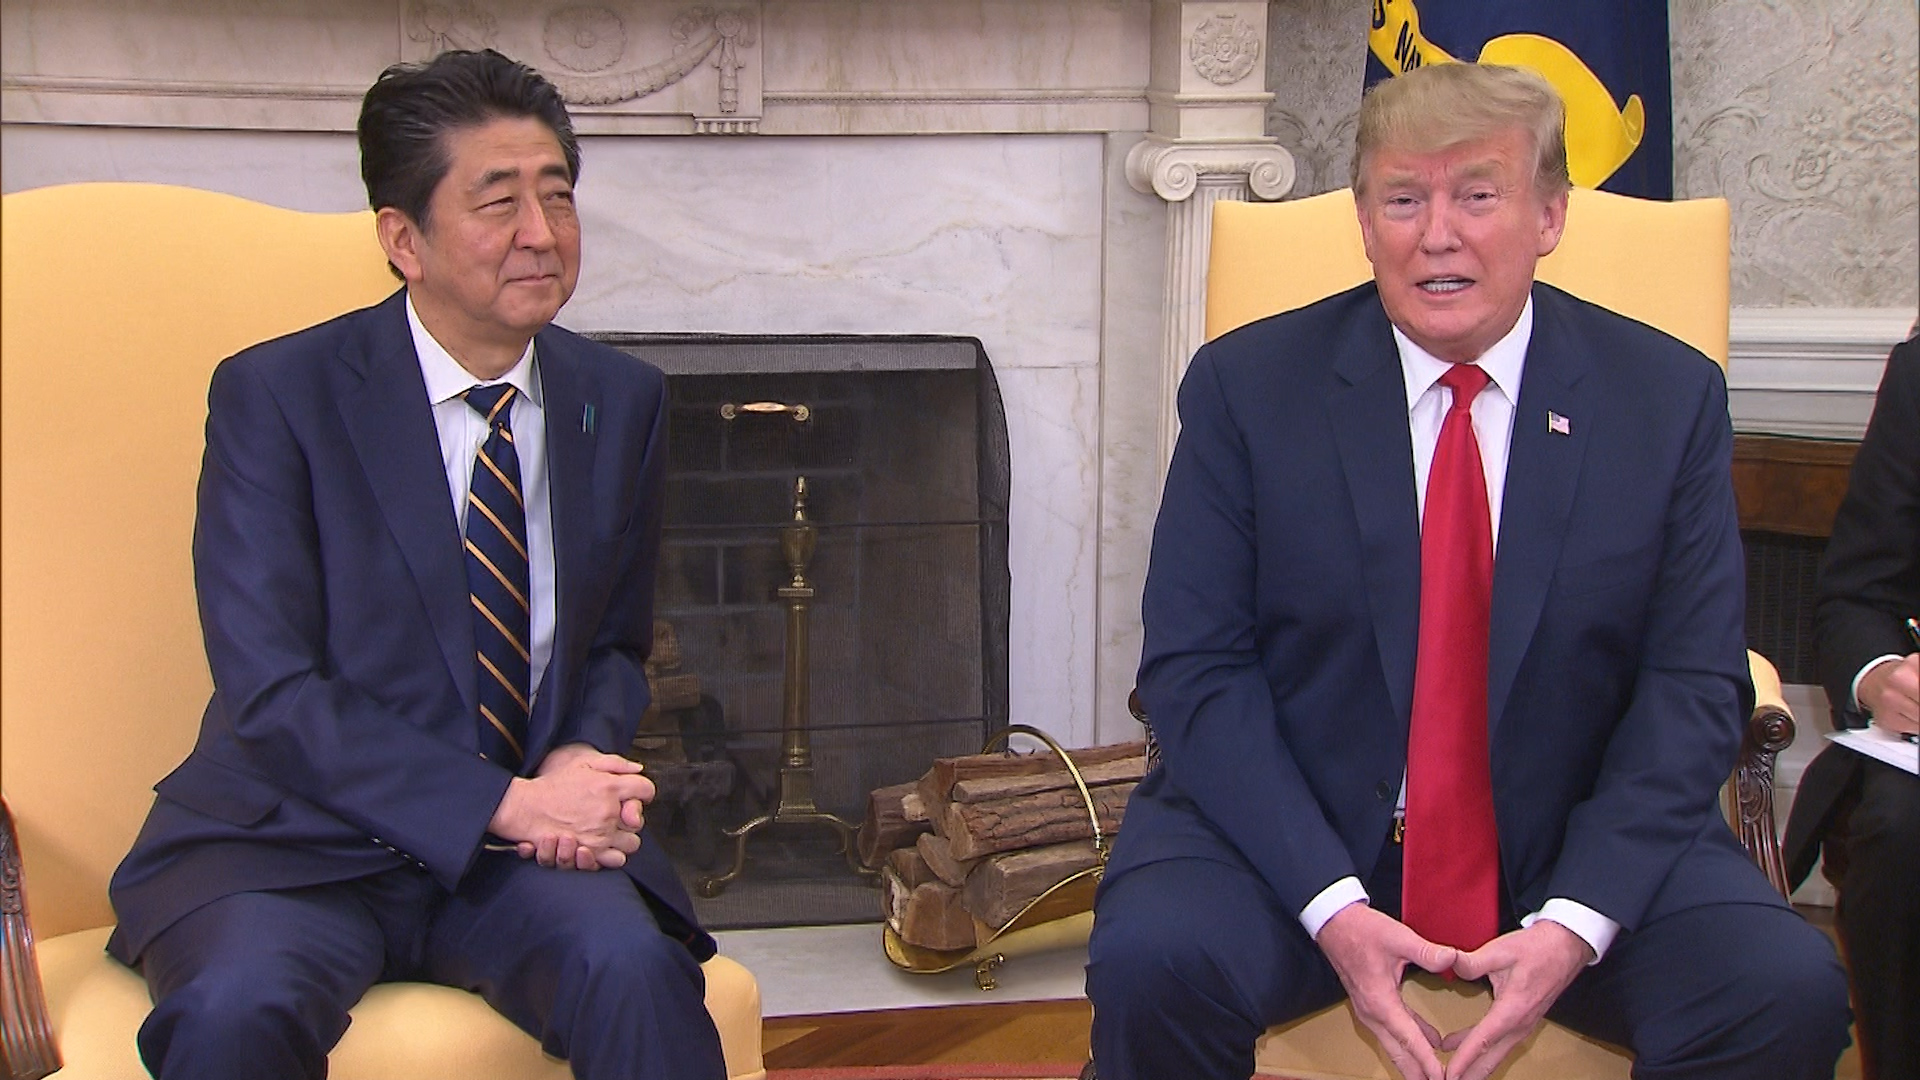 From the emperor to sumo wrestling, Abe harnesses Japan's traditions to impress Trump